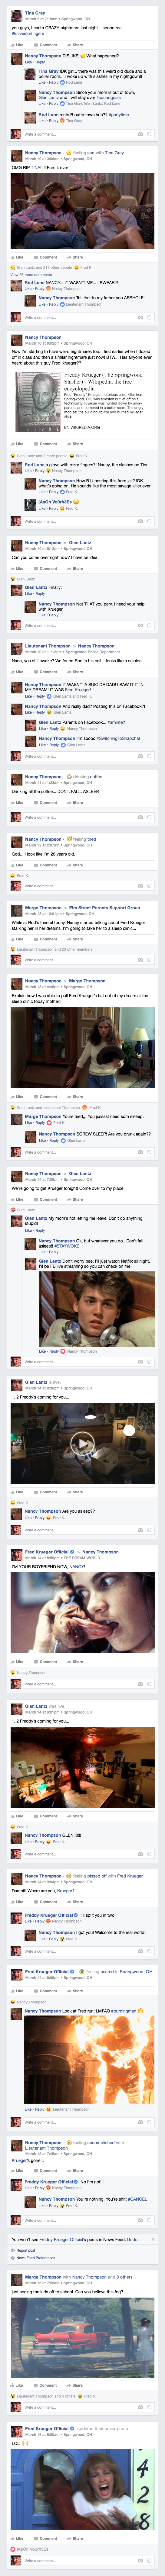 Nightmare on Elm Street Kids Facebook Timeline